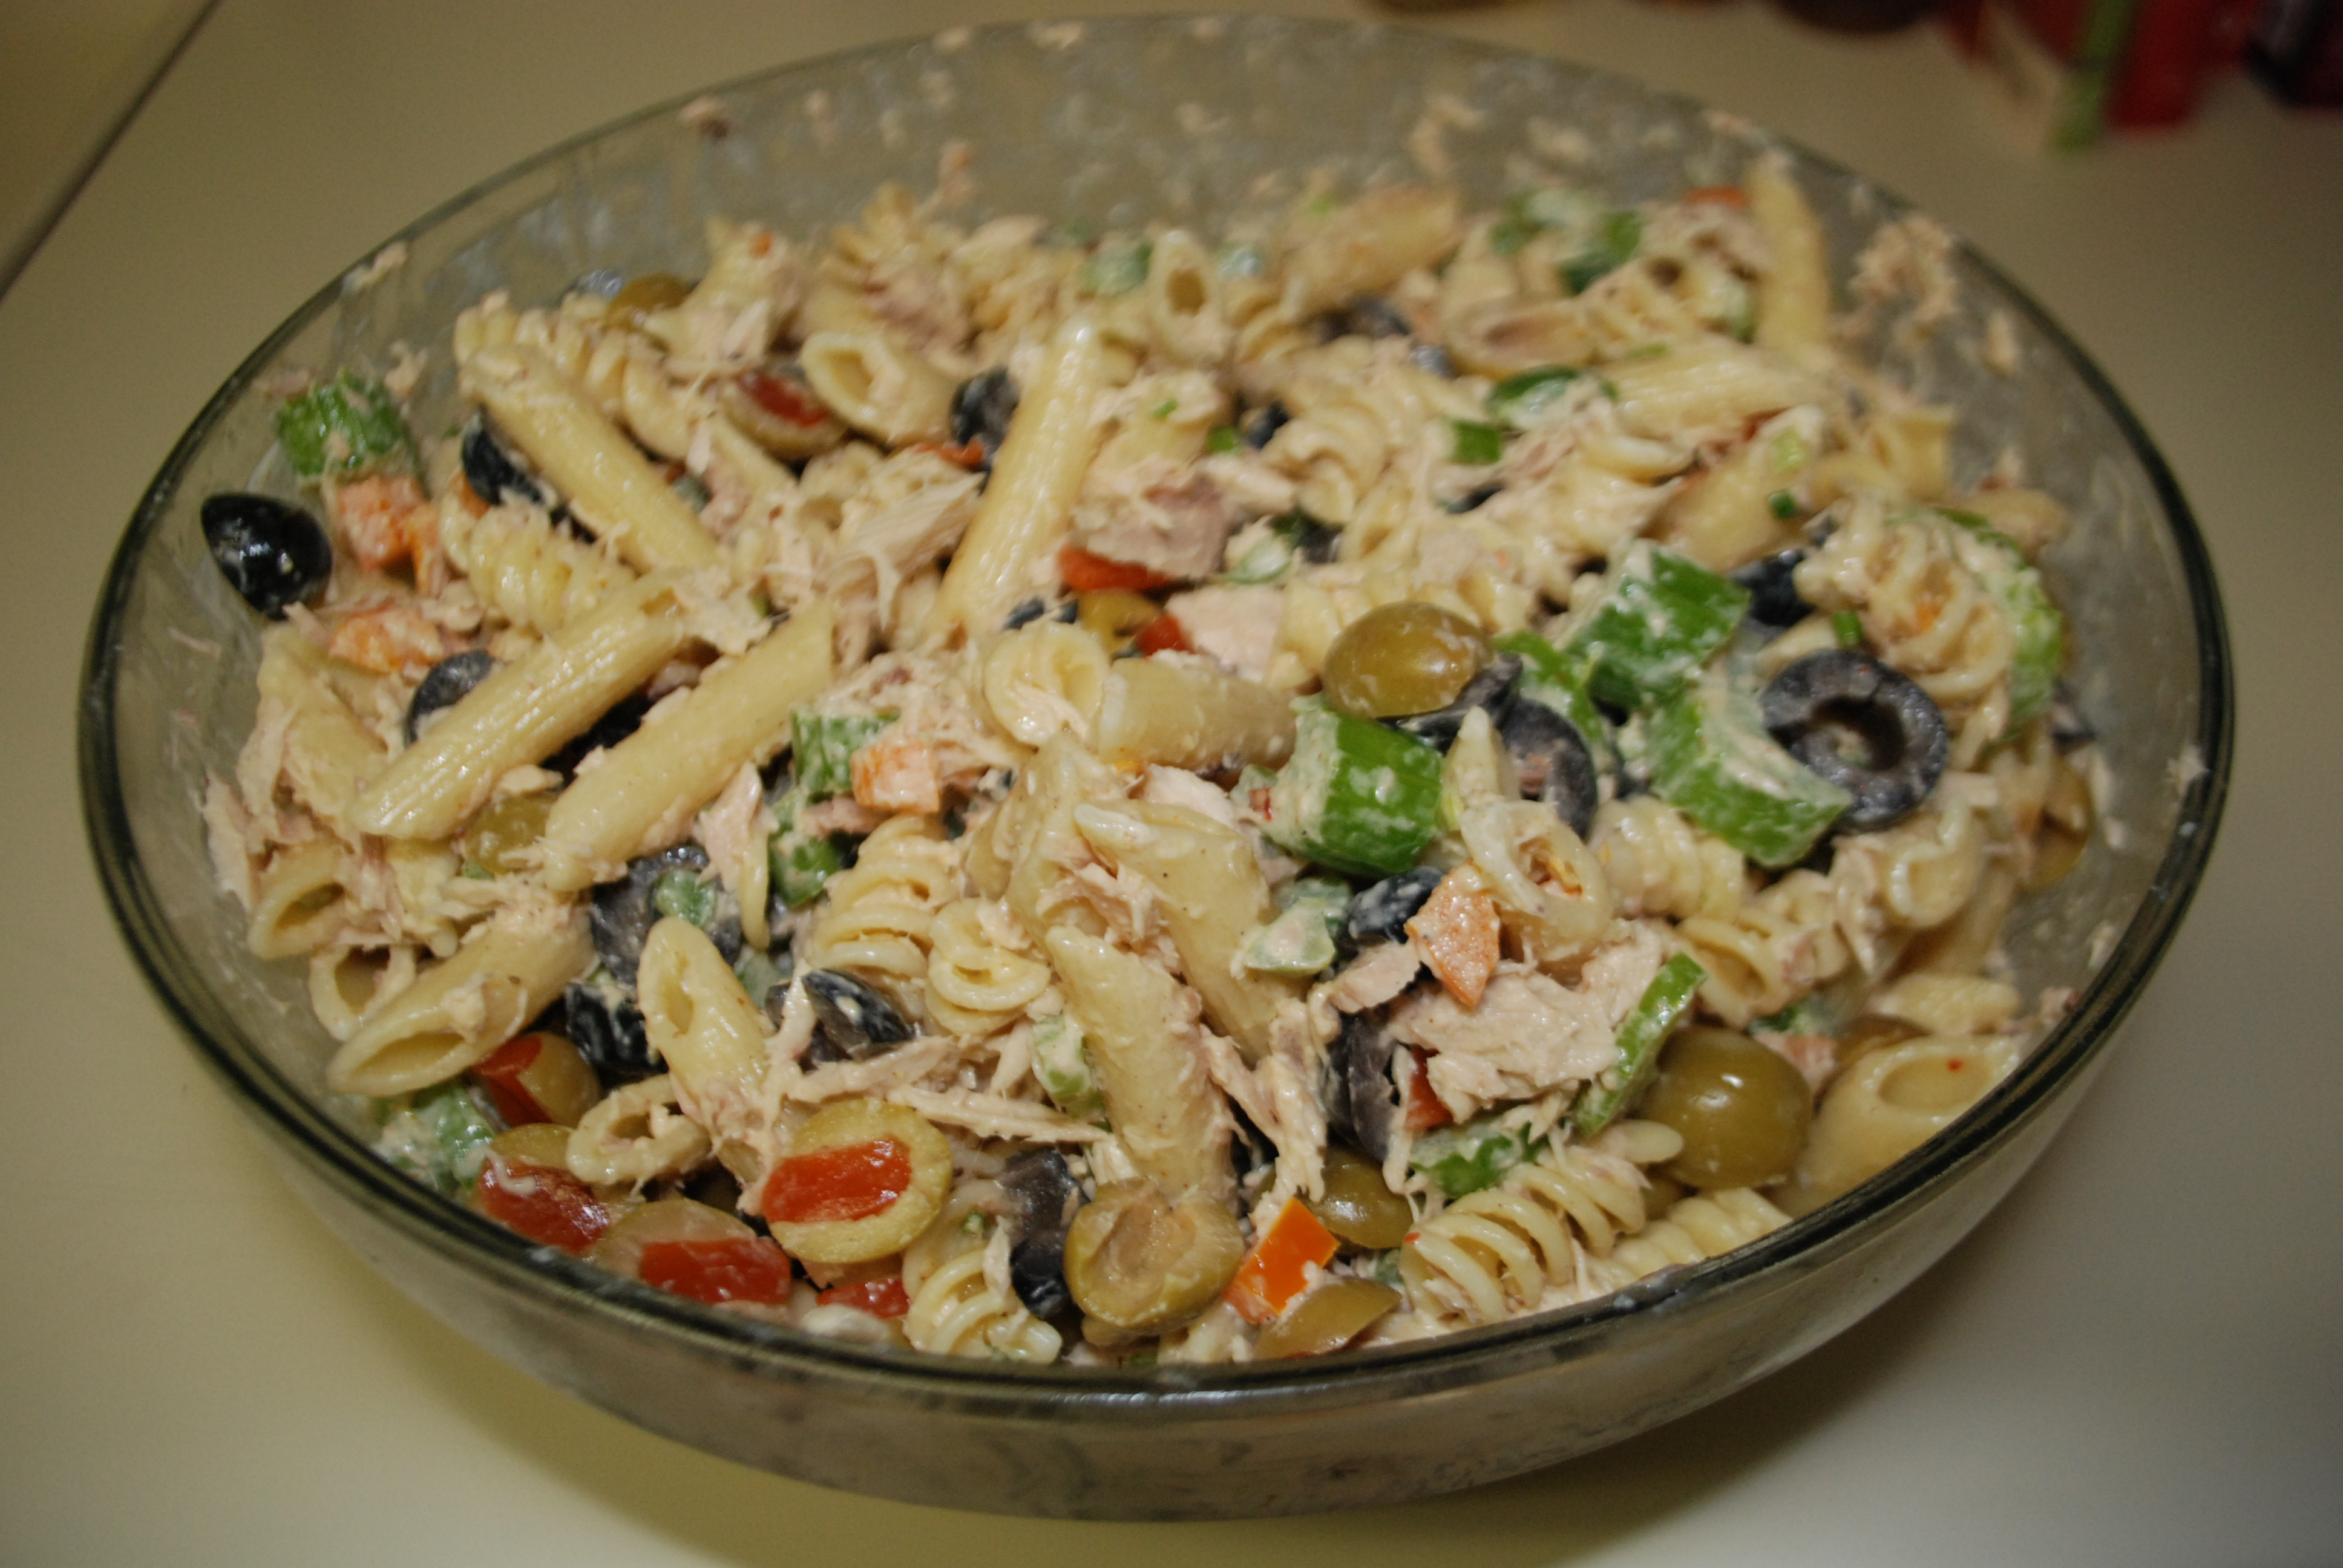 Tuna pasta salad culture jaunt for Tuna fish pasta